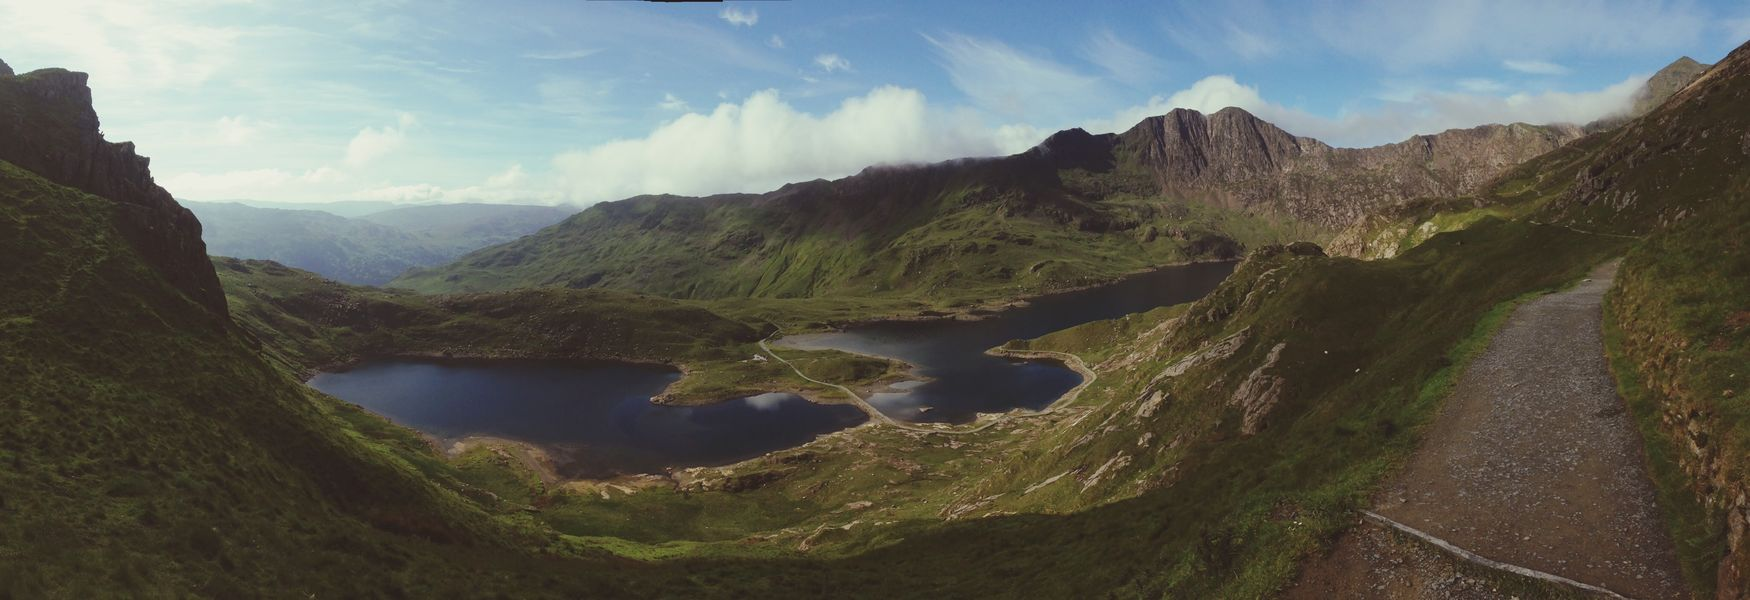 Journey To The Top Panaromic View Scenic Landscapes Hikingadventures Lake View Snowden Snowden Mountain Wales UK The Road Ahead